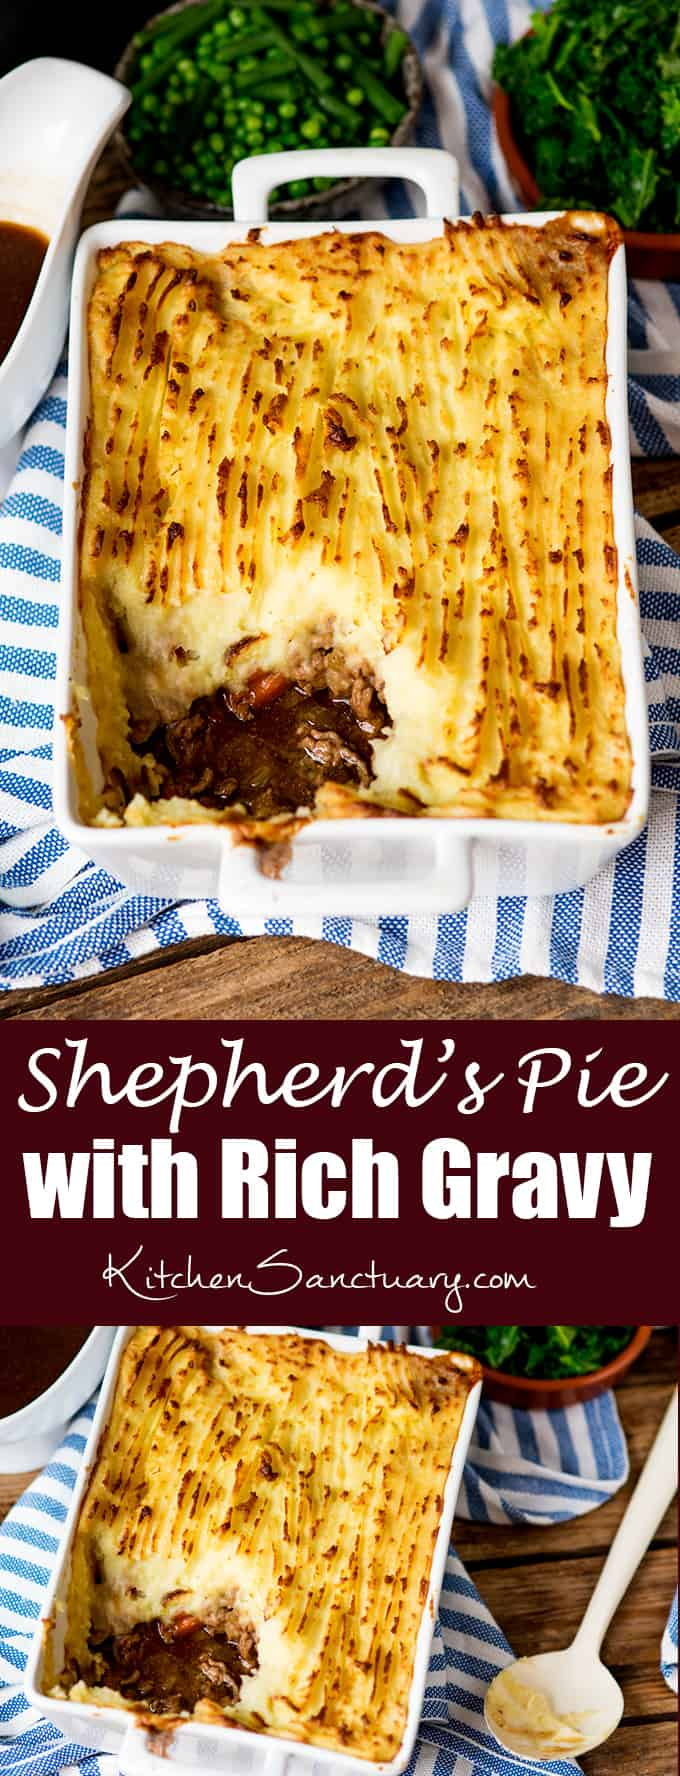 Shepherd's pie with creamy mashed potato and rich gravy - just like your mum used to make!